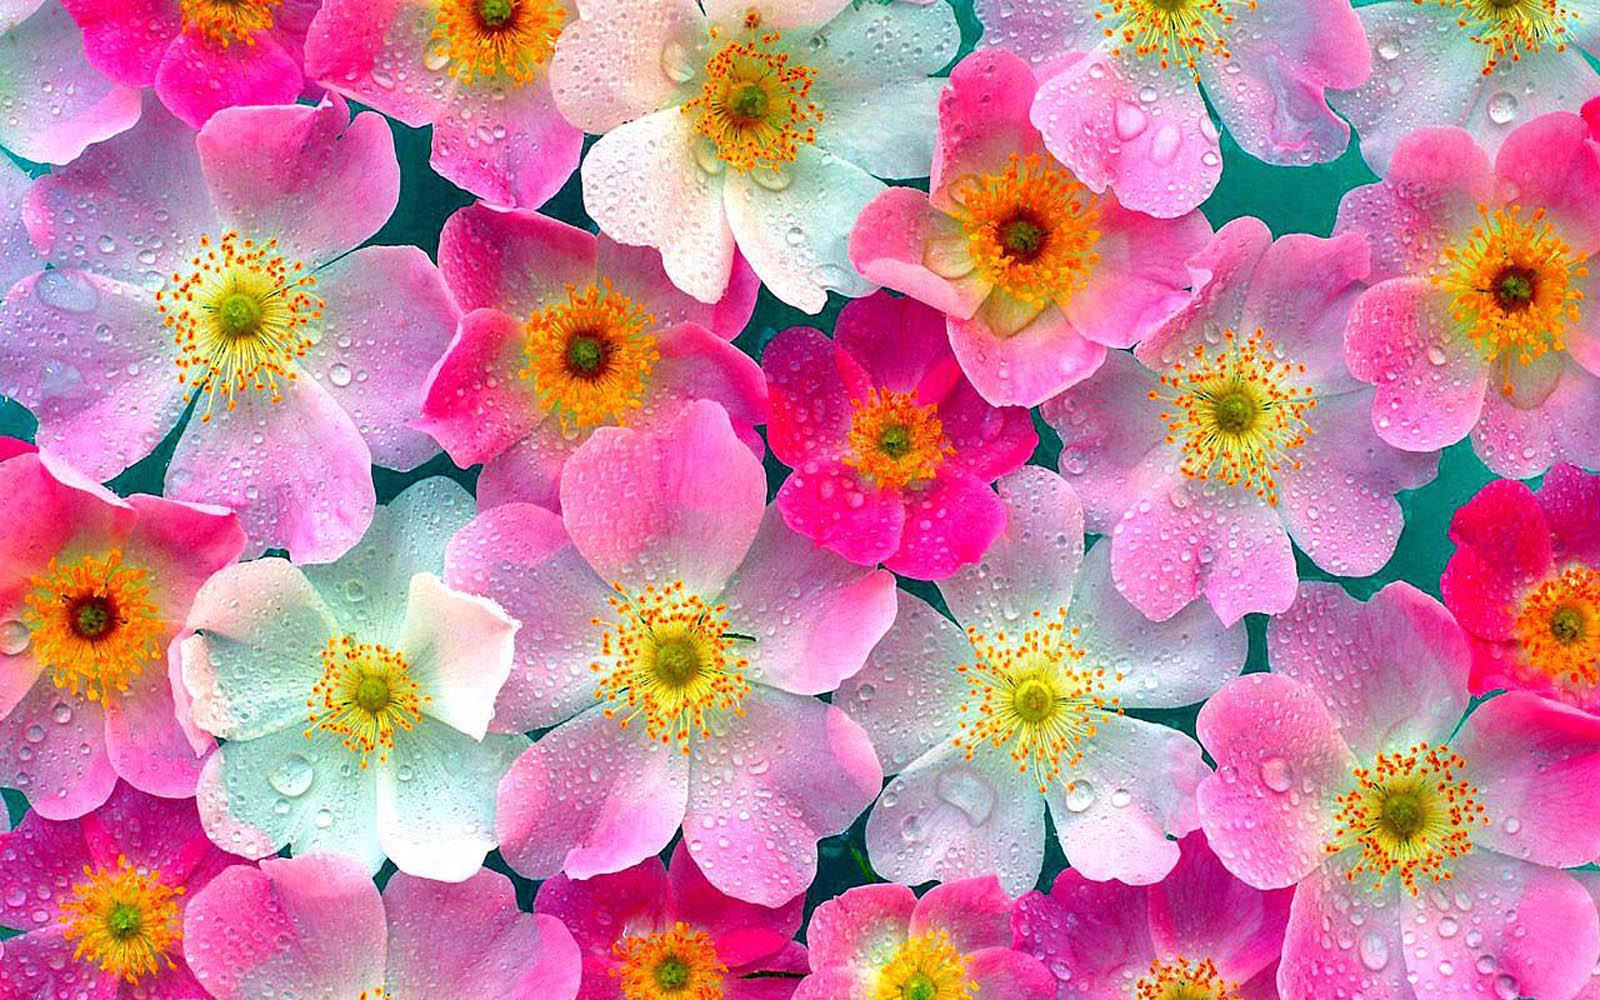 HD Wallpaper Flower Download